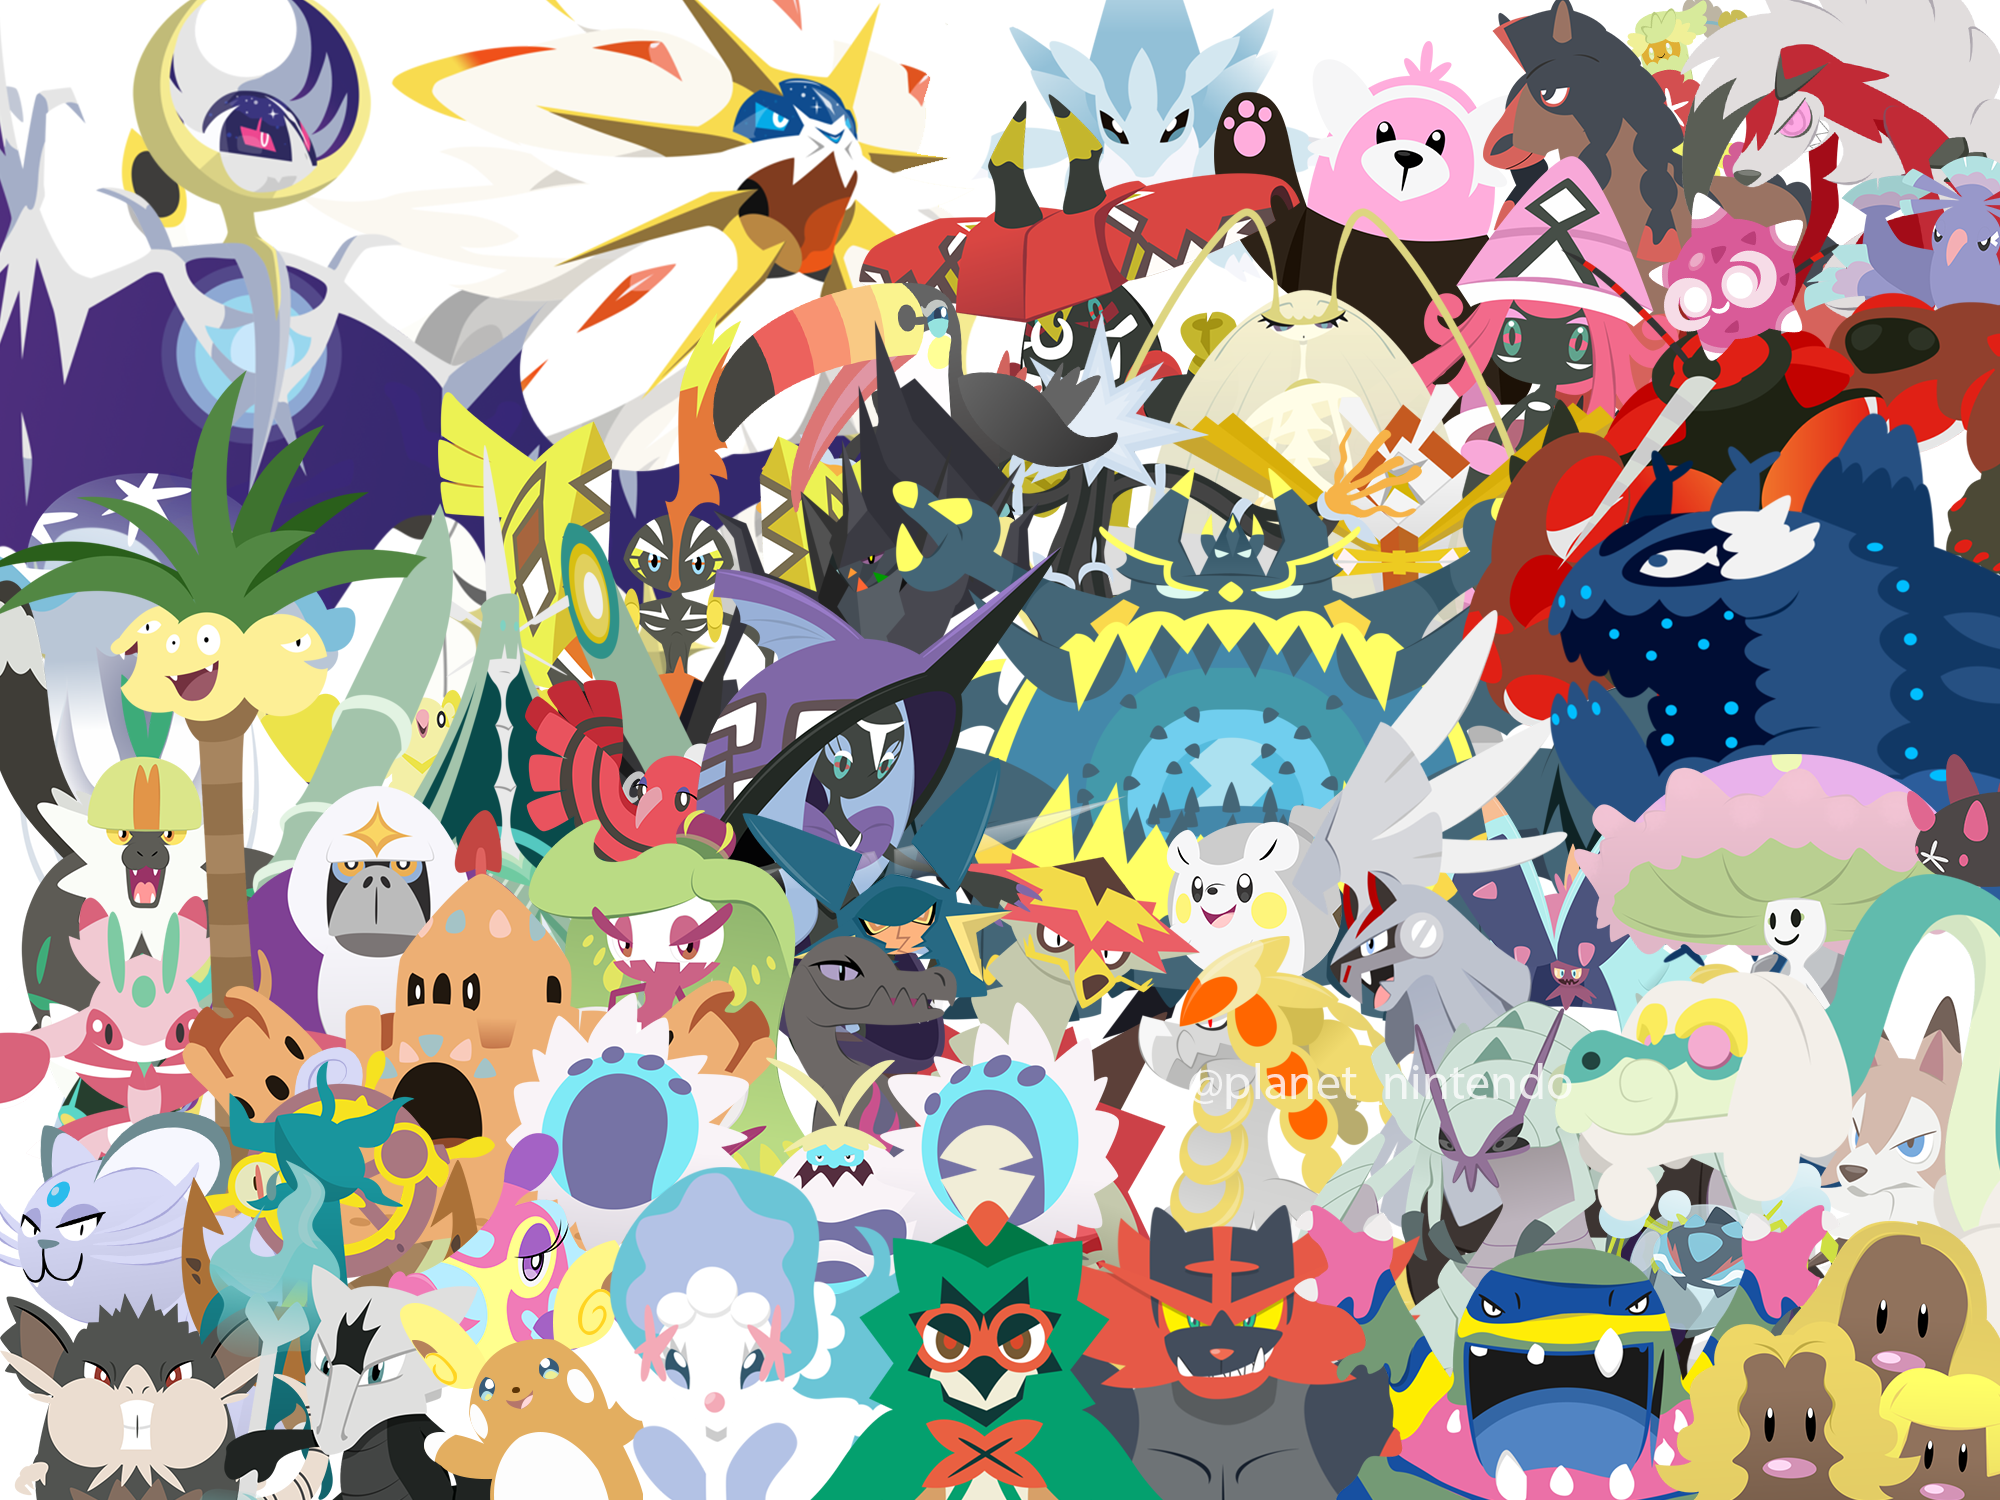 Pokemon Sun And Moon Wallpaper: Pokemon Sun And Moon Wallpaper By PlanetNintendo On DeviantArt